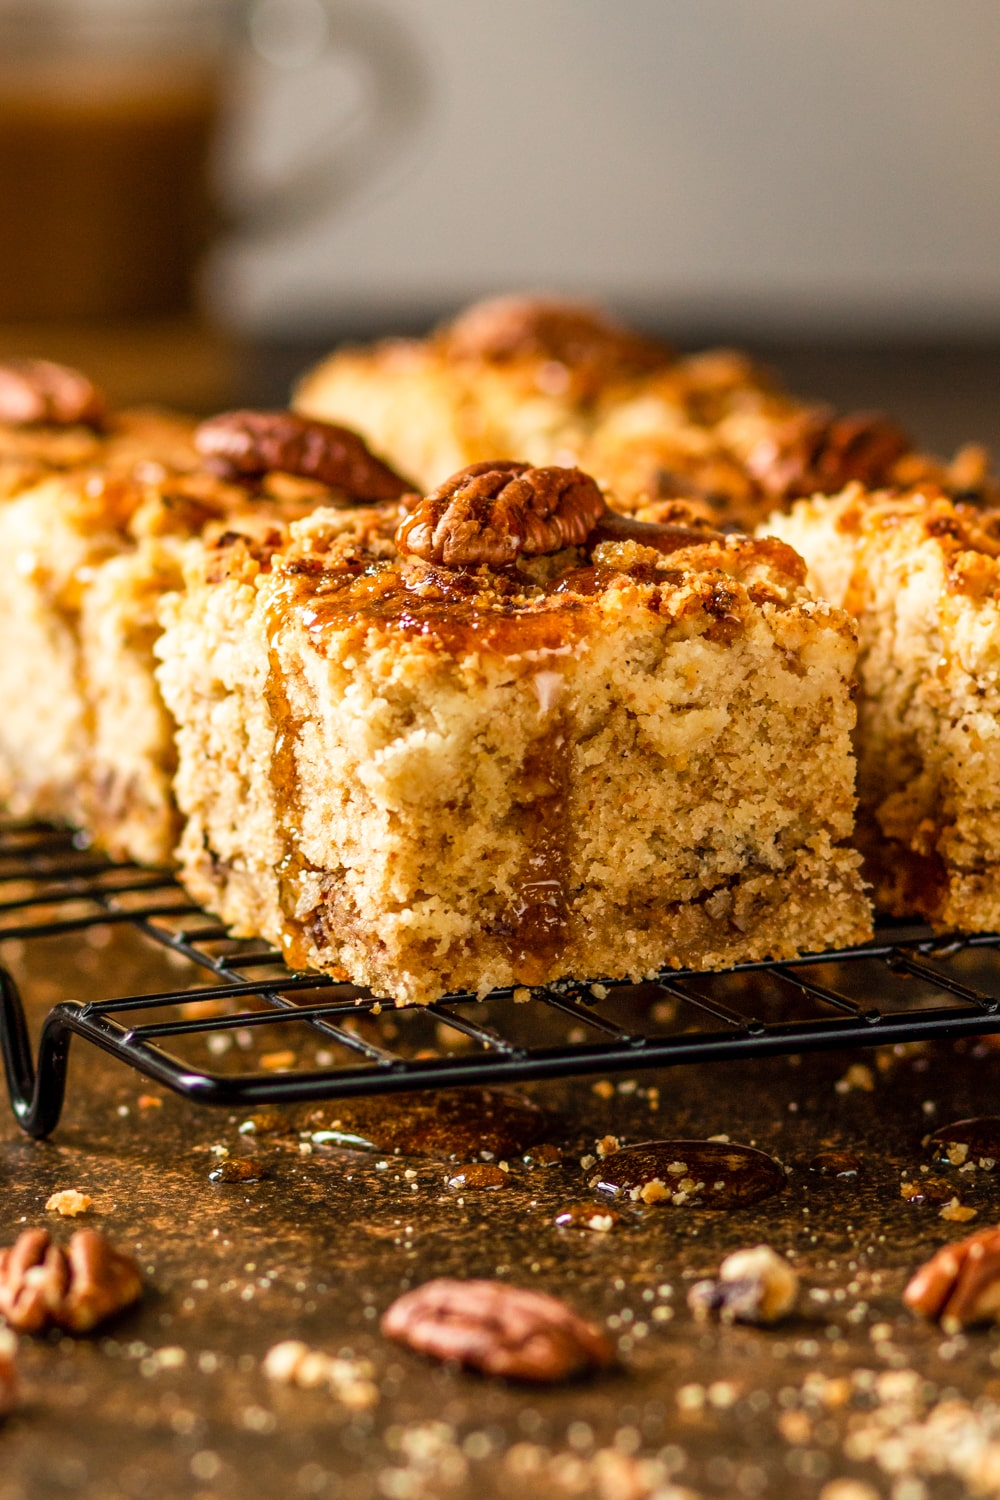 A side view of one piece of coffee cake with several pieces in the background. There is one pecan on top of each piece of coffee cake. The coffee cake is on a wire rack which is sitting on a stone table.